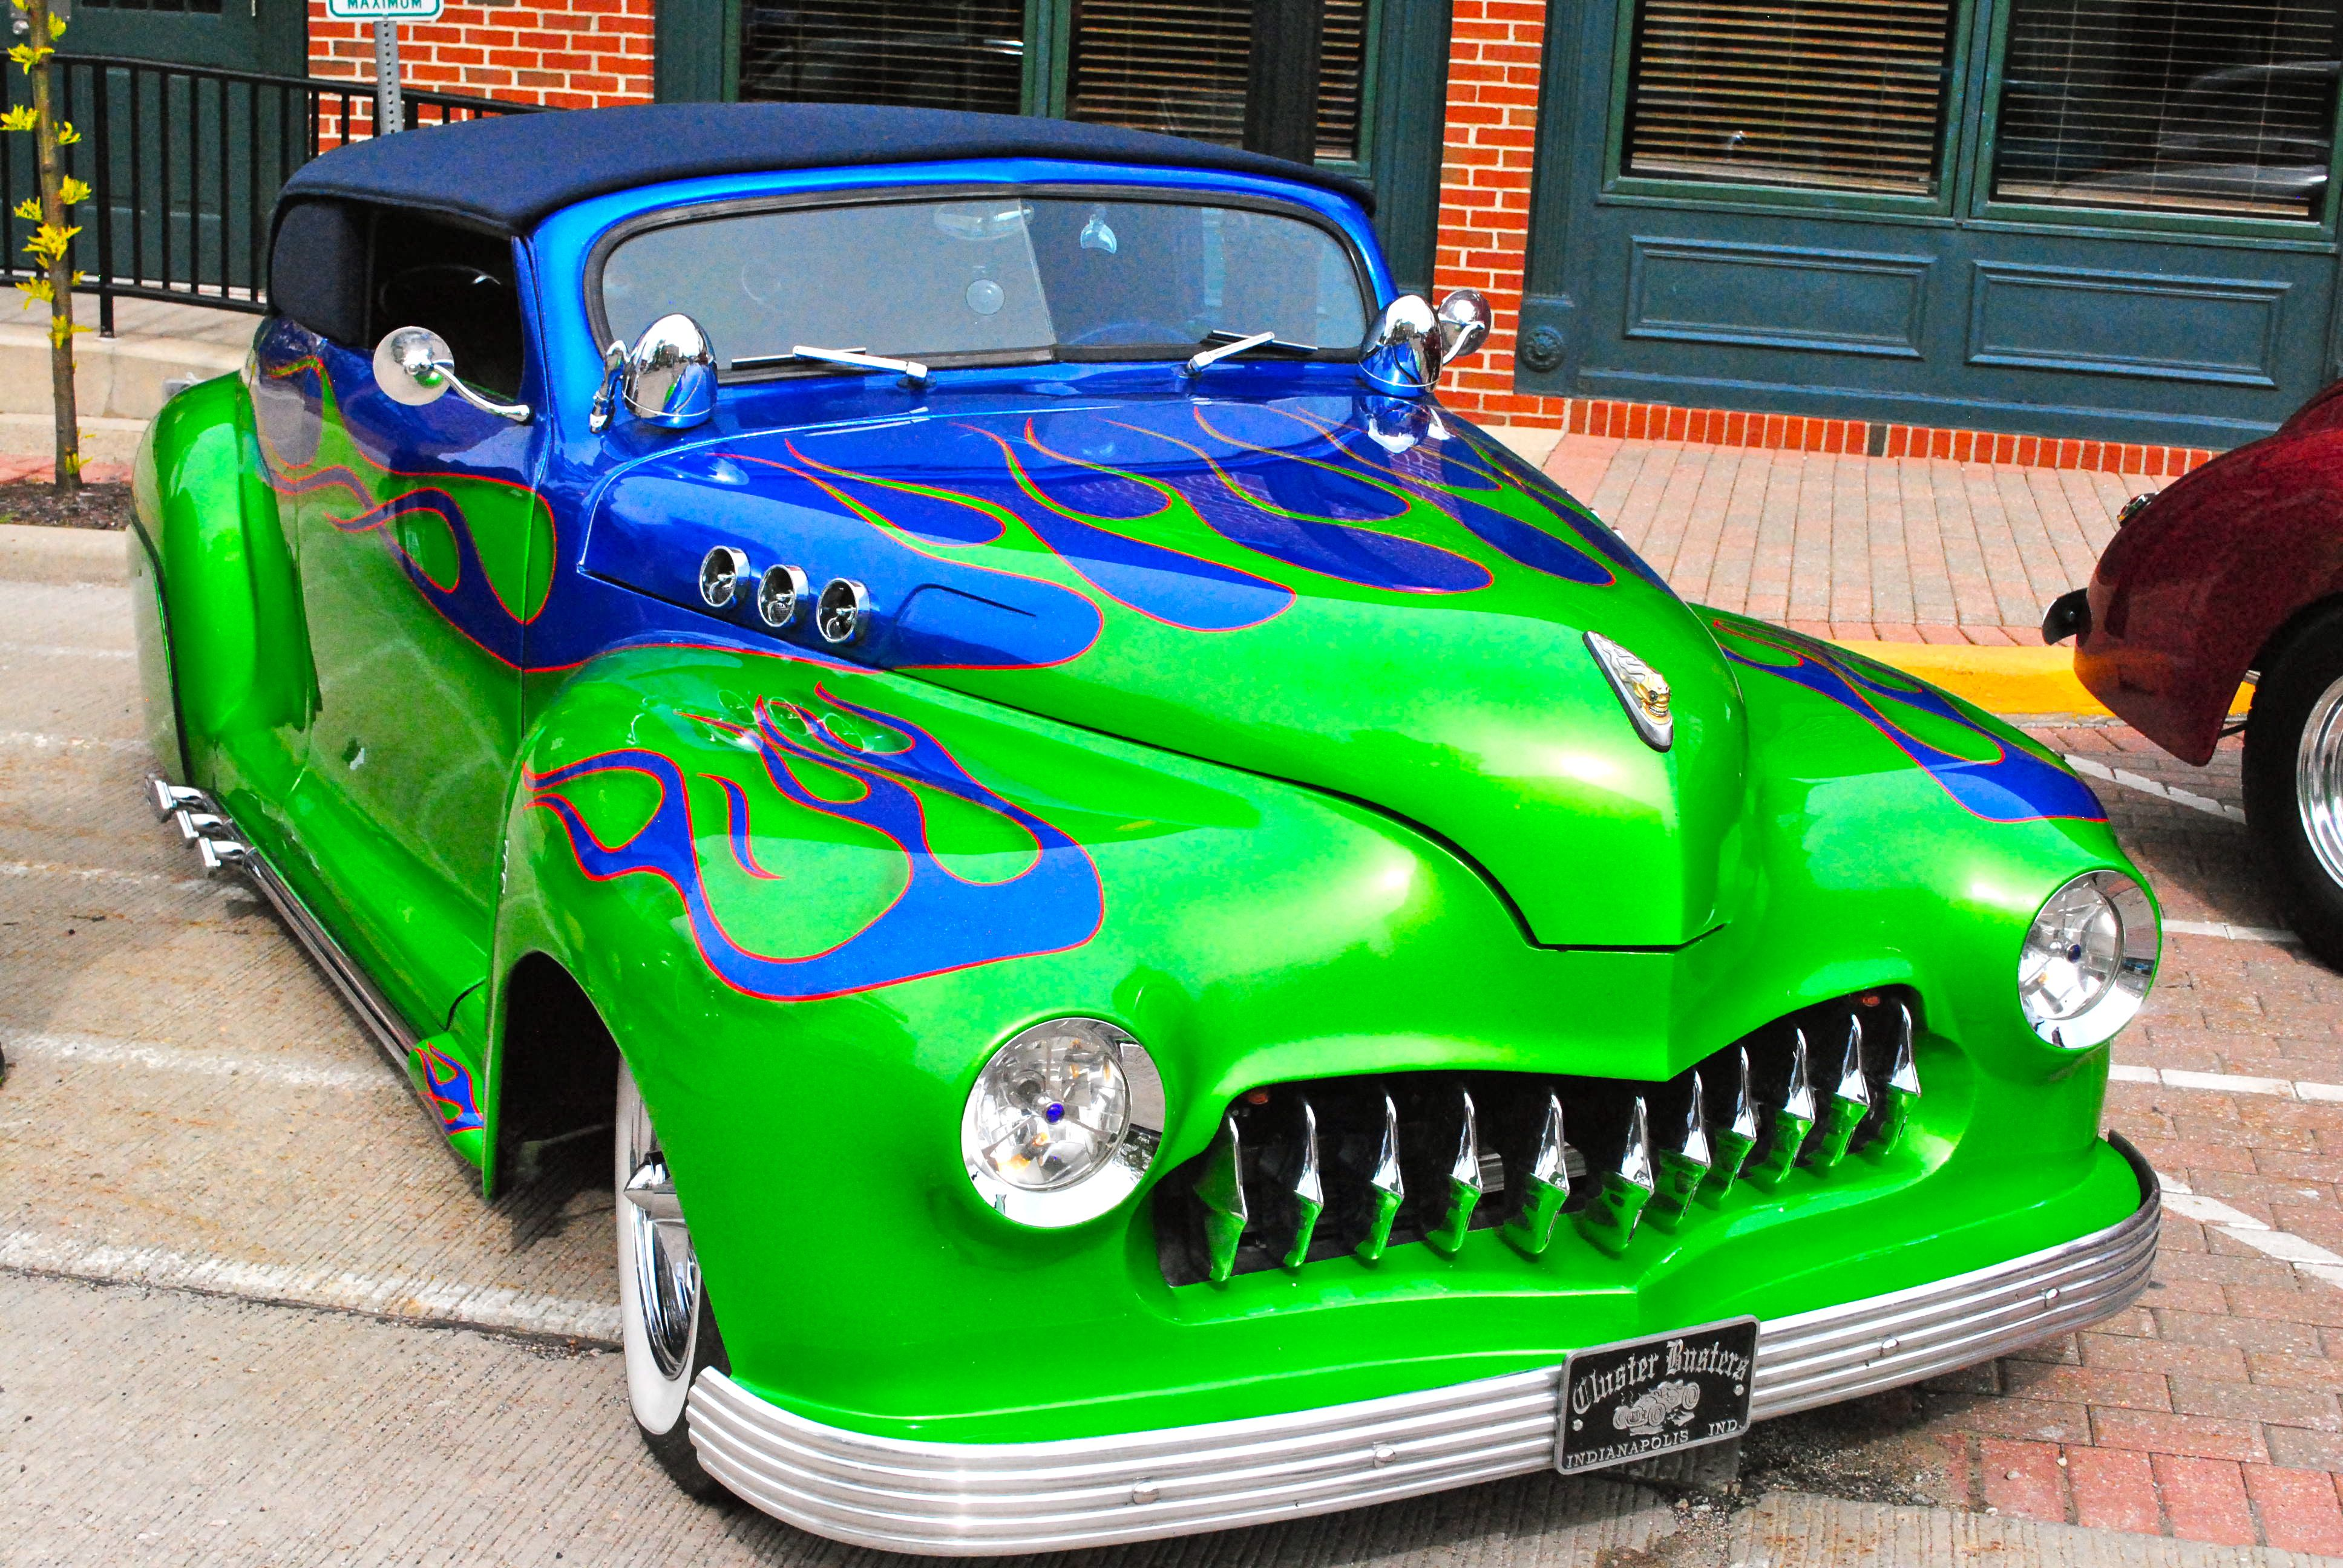 Enjoy Hot Rods & Good Times at First Friday Cruise-Ins